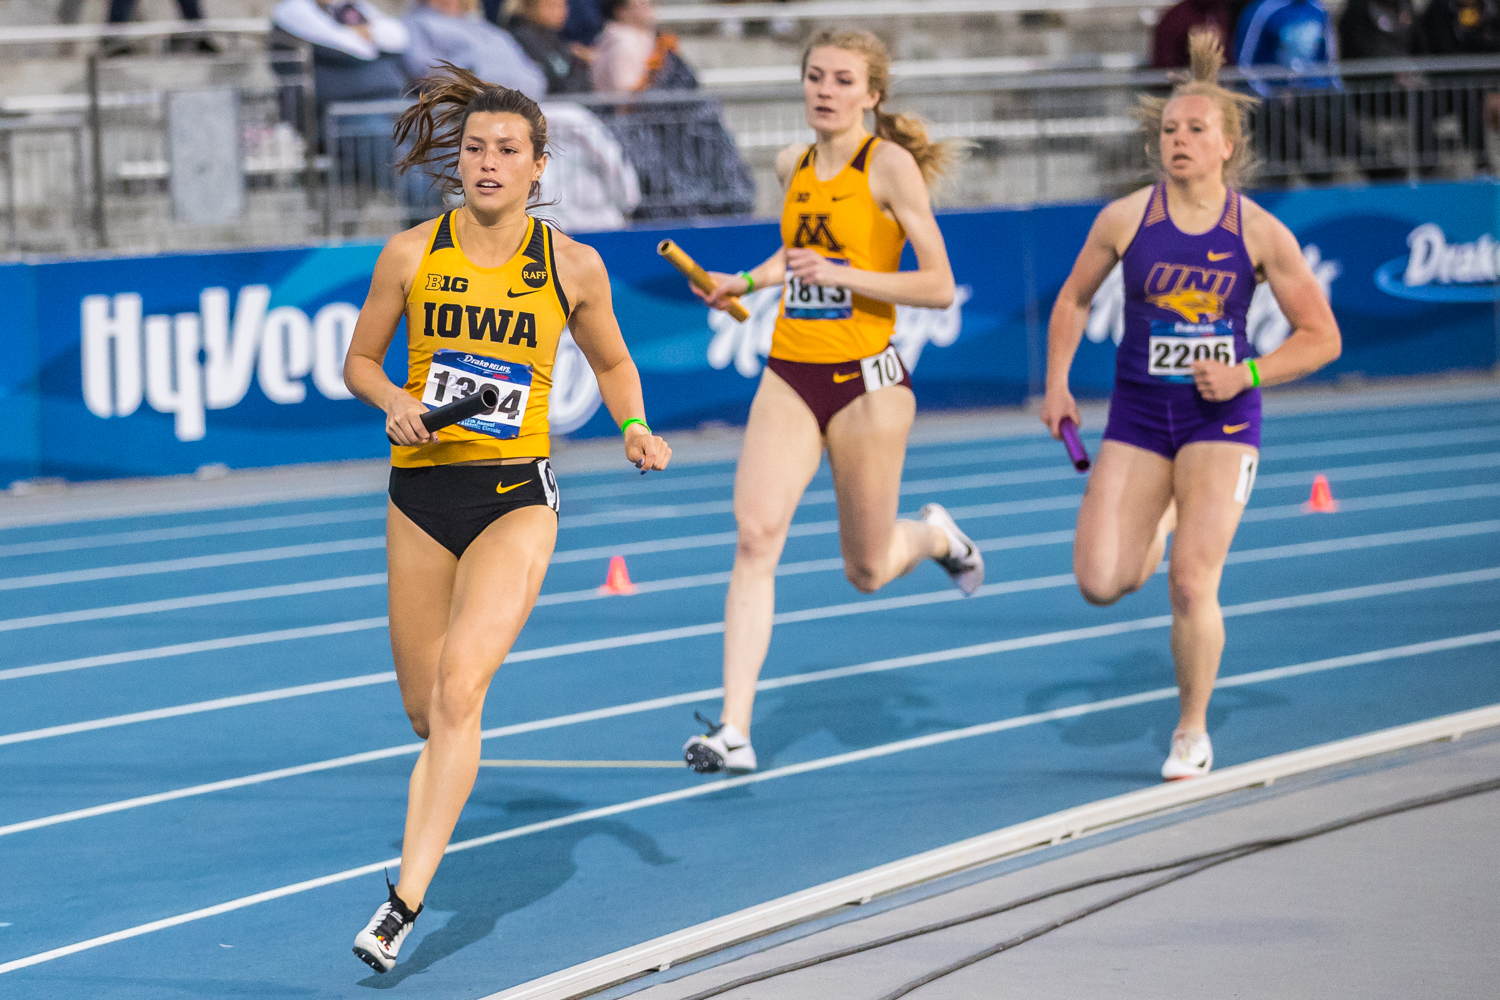 Iowa's Taylor Arco runs in the women's 4x800m race at the 2019 Drake Relays in Des Moines, IA, on Friday, April 26, 2019. Iowa earned second in the event with a time of 8:31.84.